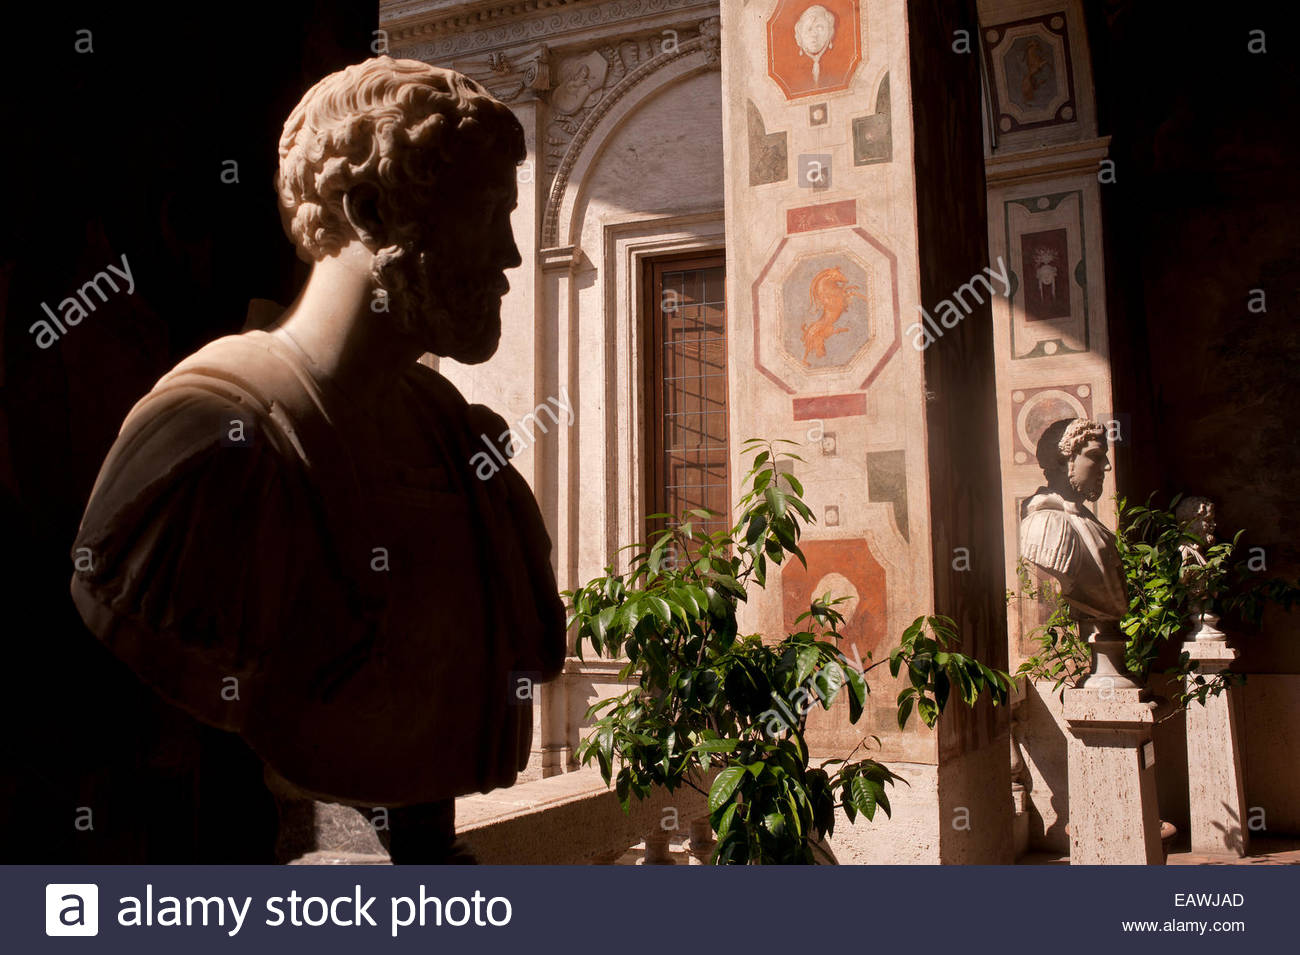 Busts of Roman emperors if the Palazzo Altemps in Rome. - Stock Image